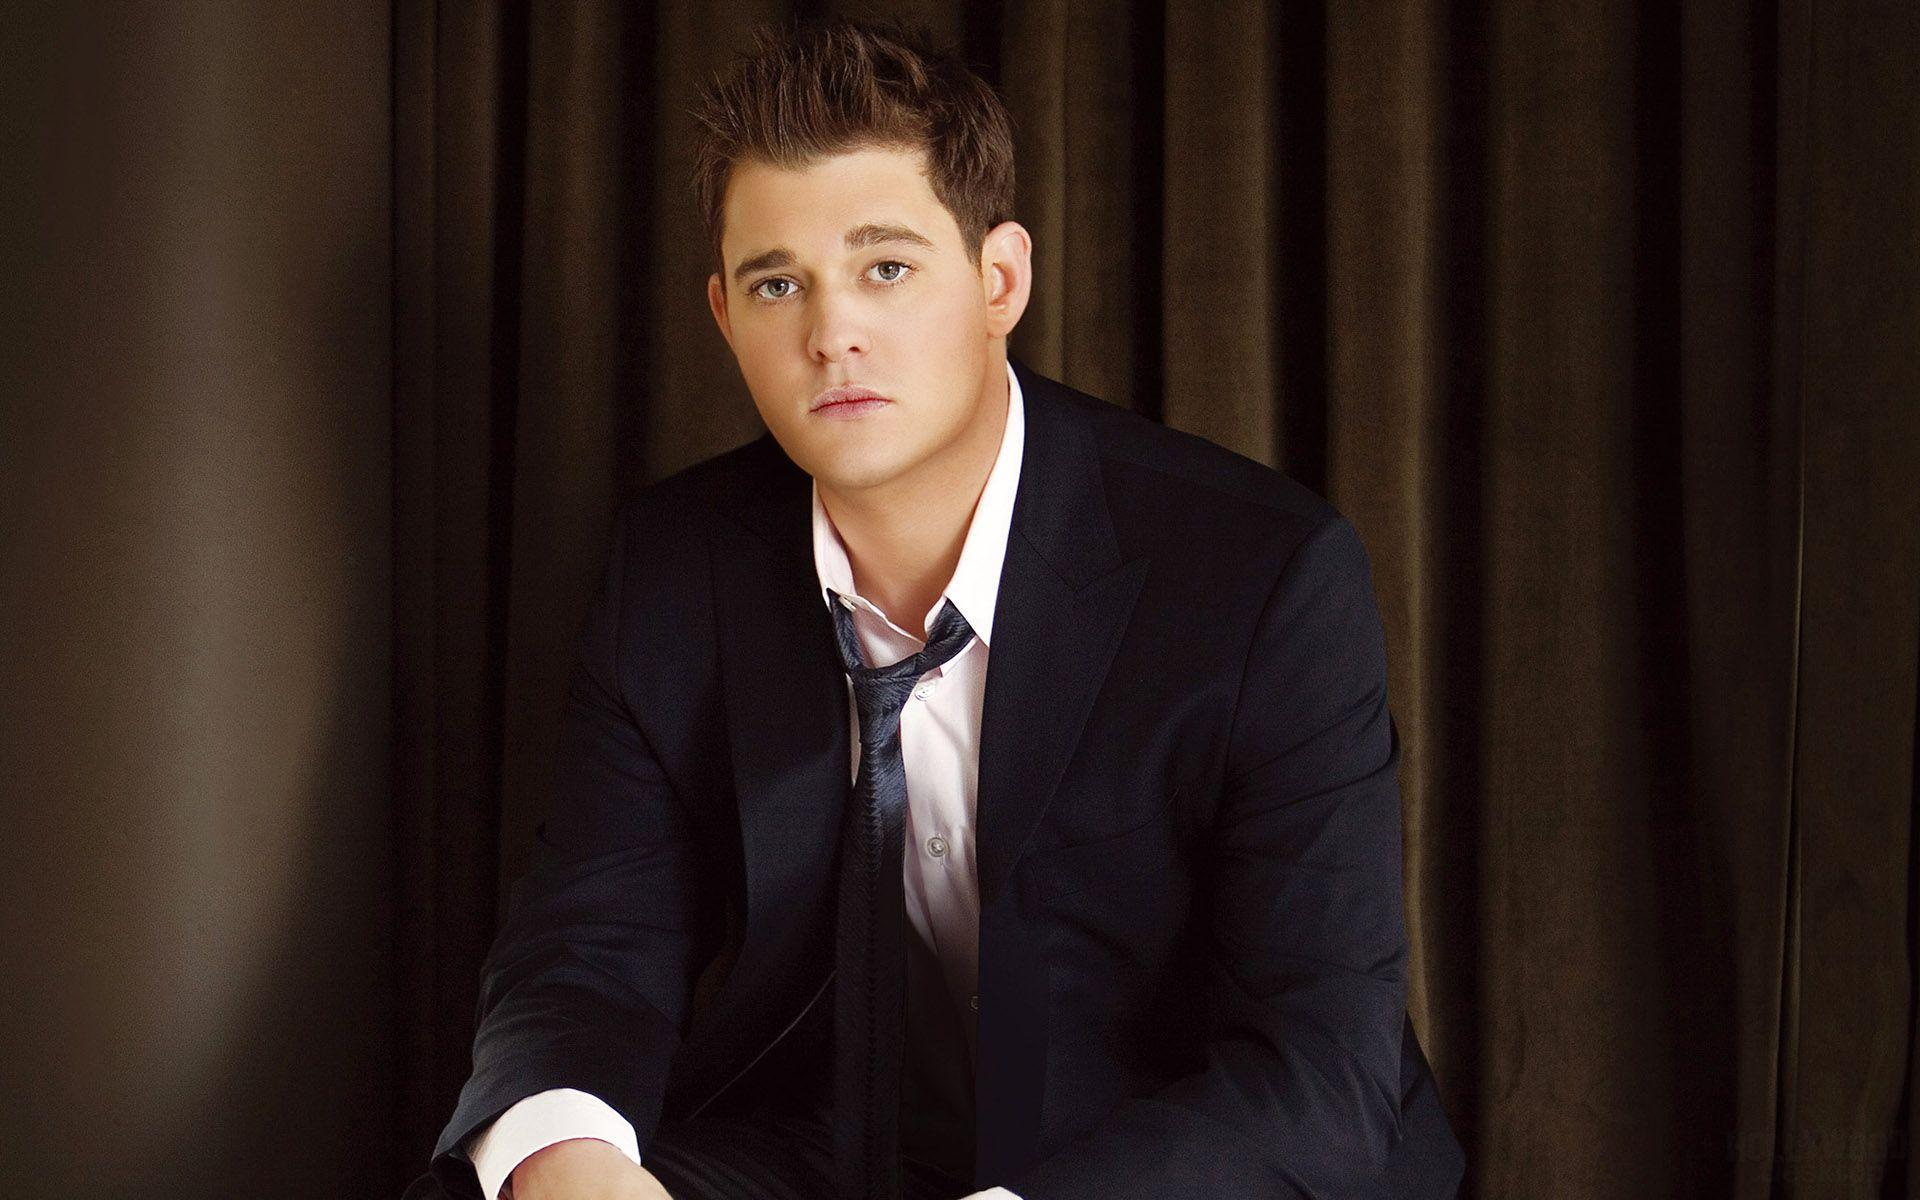 Free HQ Michael Buble 001 Wallpapers